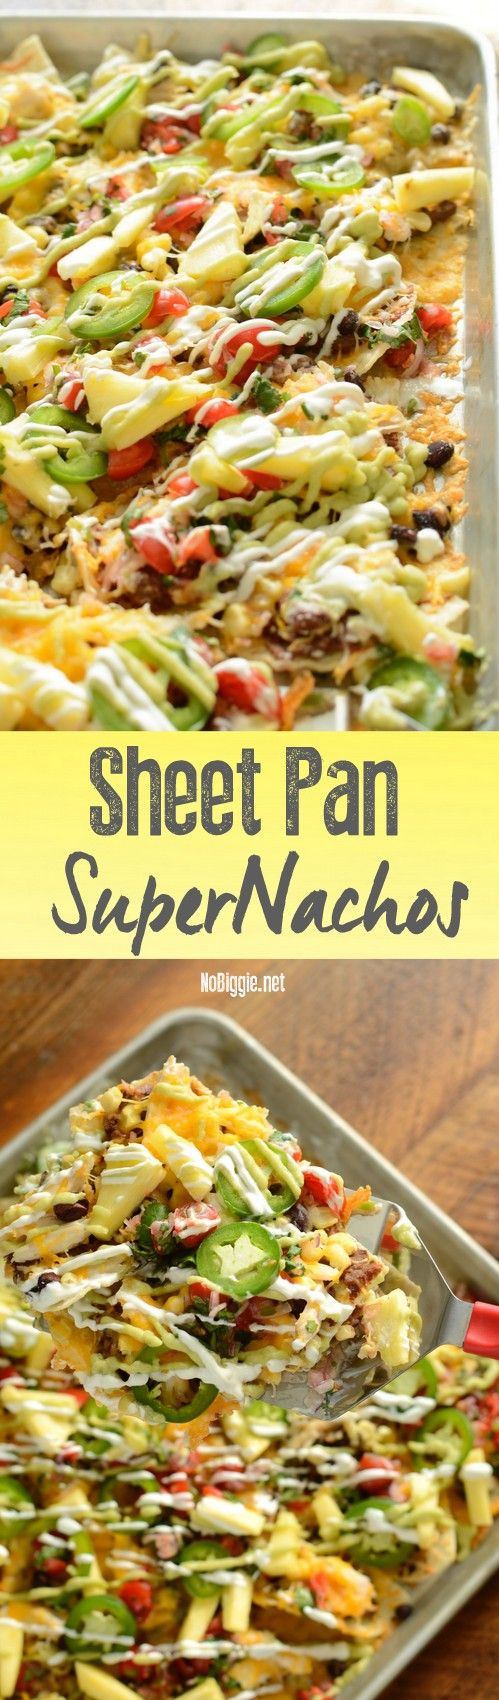 Feed a crowd on game day with these Sheet Pan Super Nachos. The freshness of the pico de gallo and fresh pineapple make these nachos SUPER!